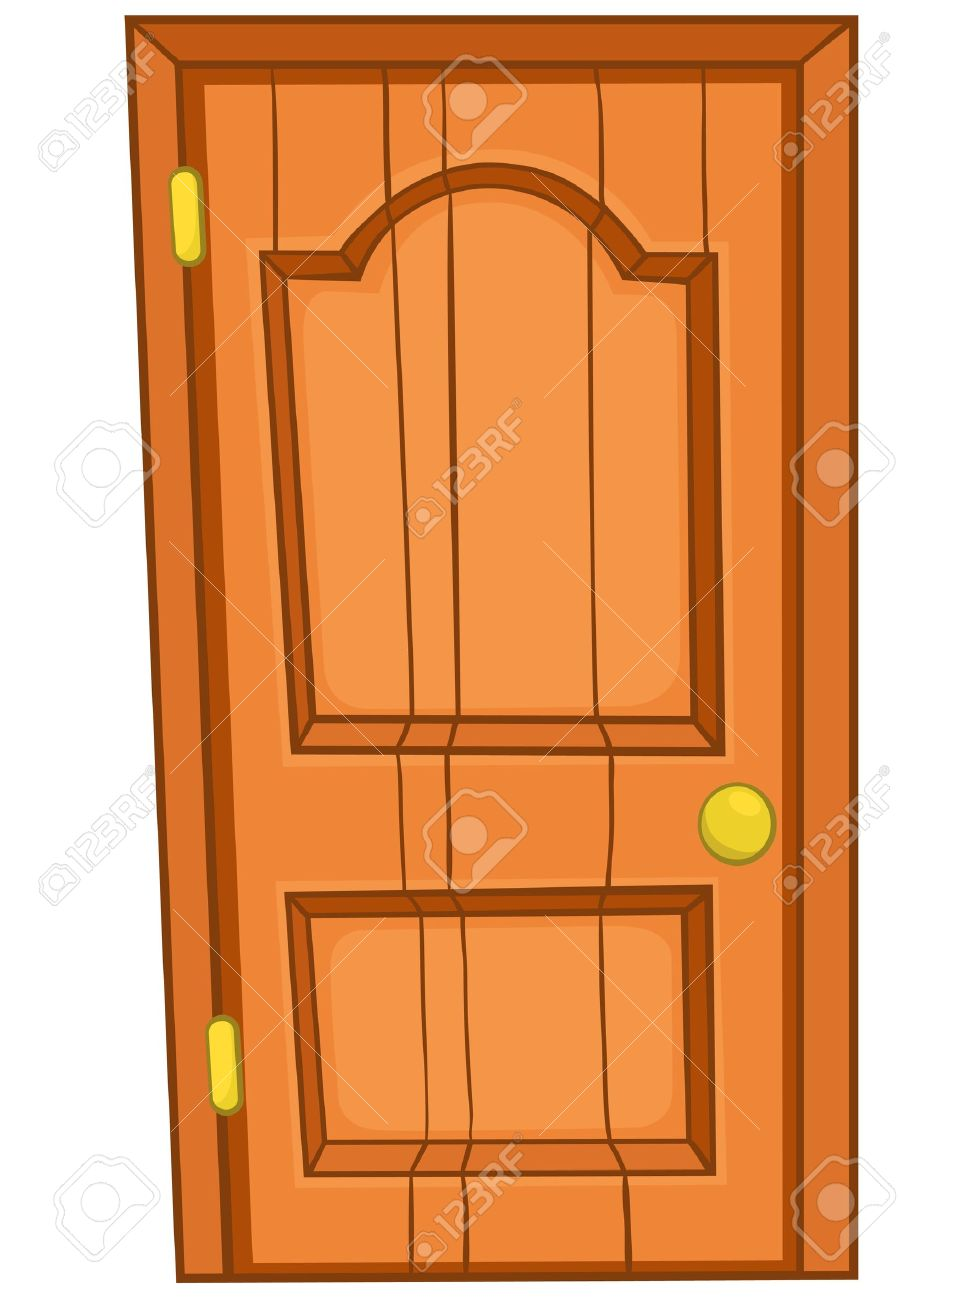 Door Clipart Puerta Pencil And In Color Puerta, Cartoon Clip Art.